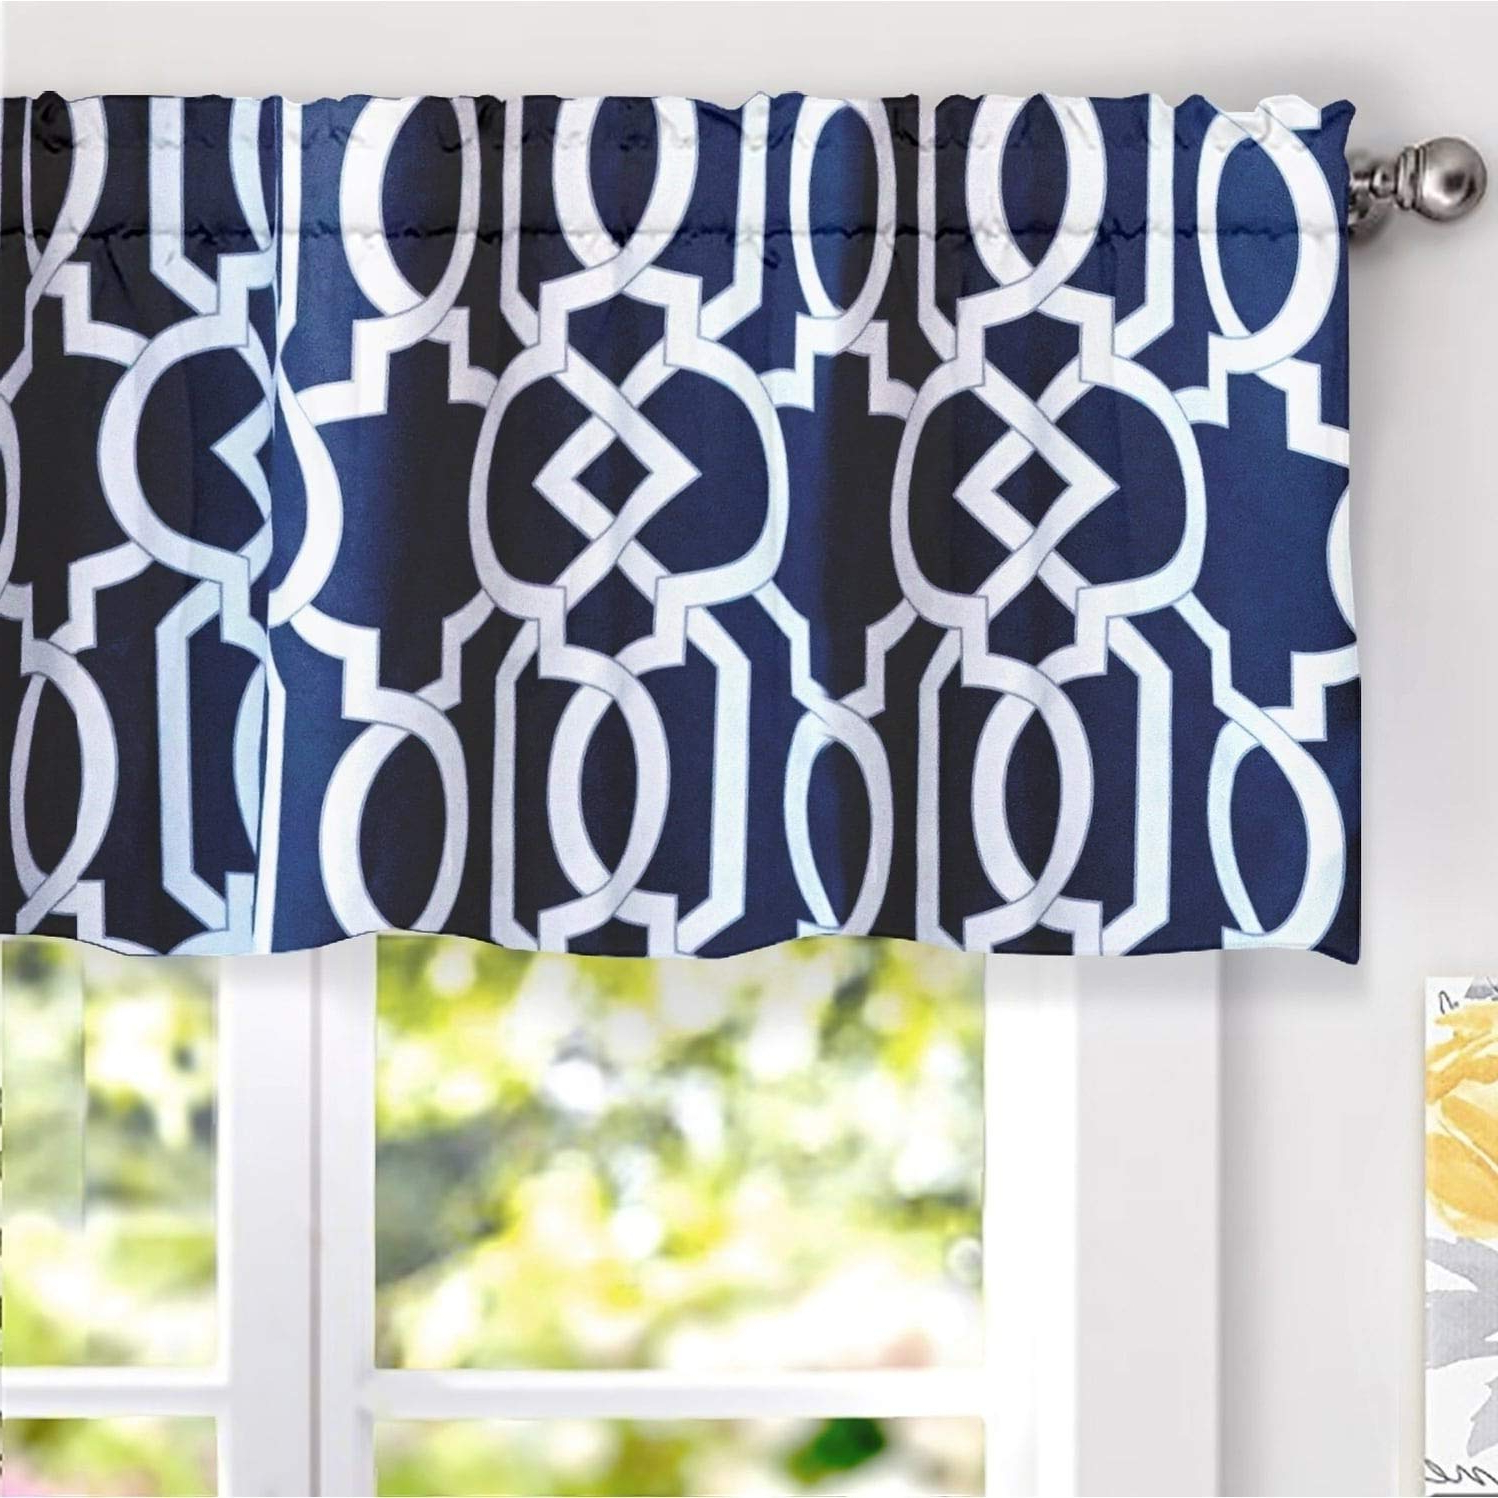 Trellis Pattern Window Valances For Favorite Driftaway Abigail Geometric Trellis Pattern Window Curtain Valance Rod Pocket 52 Inch18 Inch Navy (View 2 of 20)